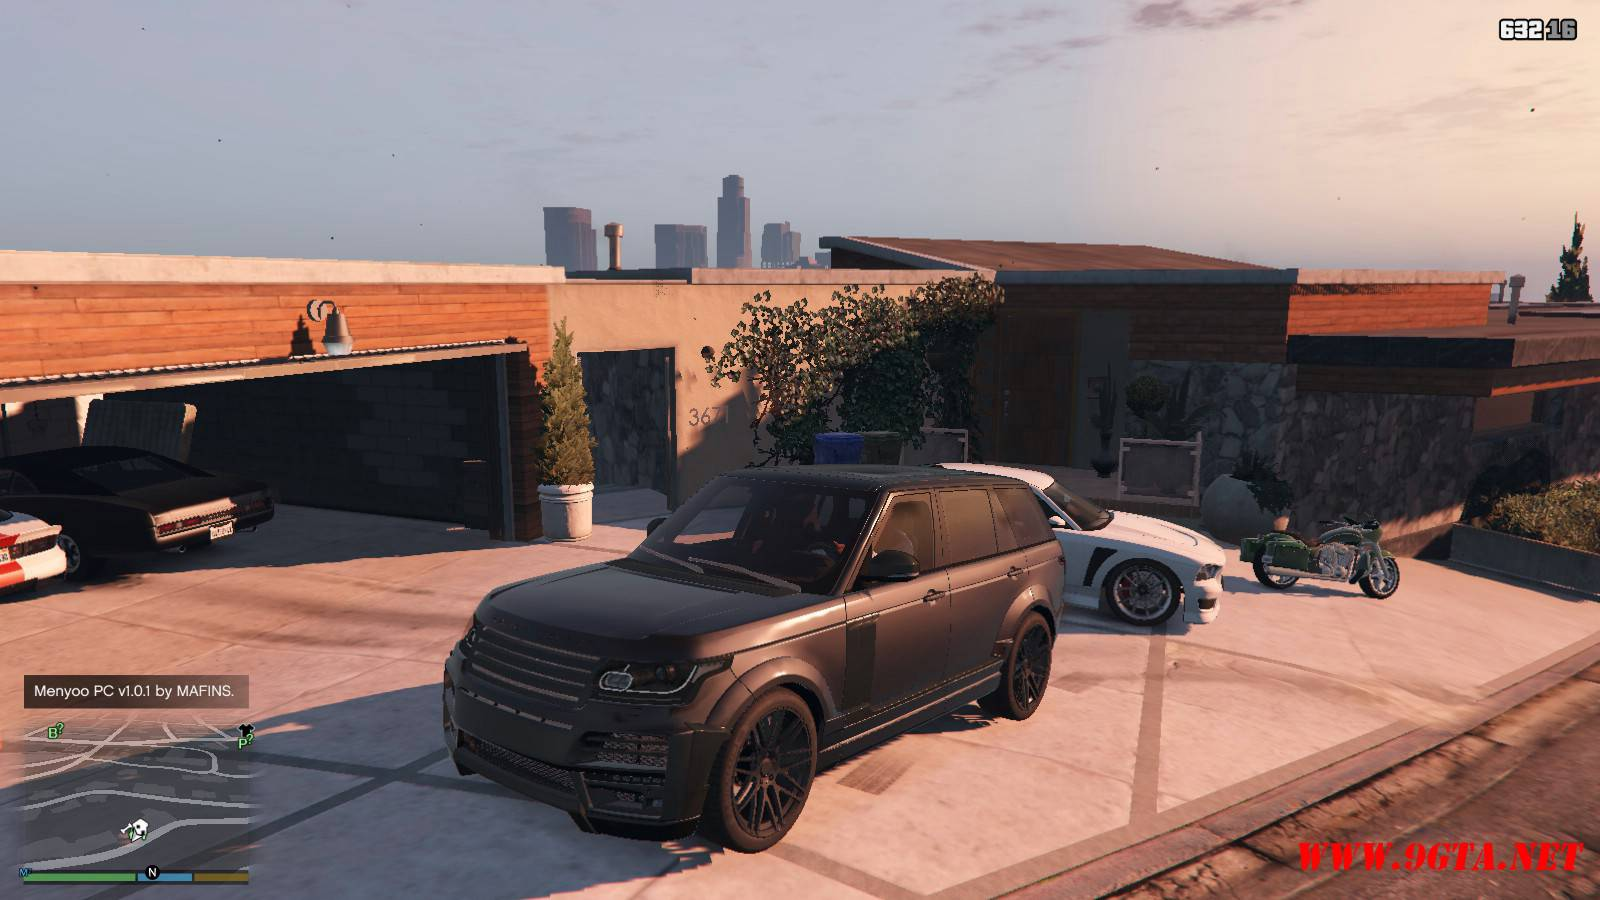 Range Rover Vogue Startech 2019 GTA5 mods (1)